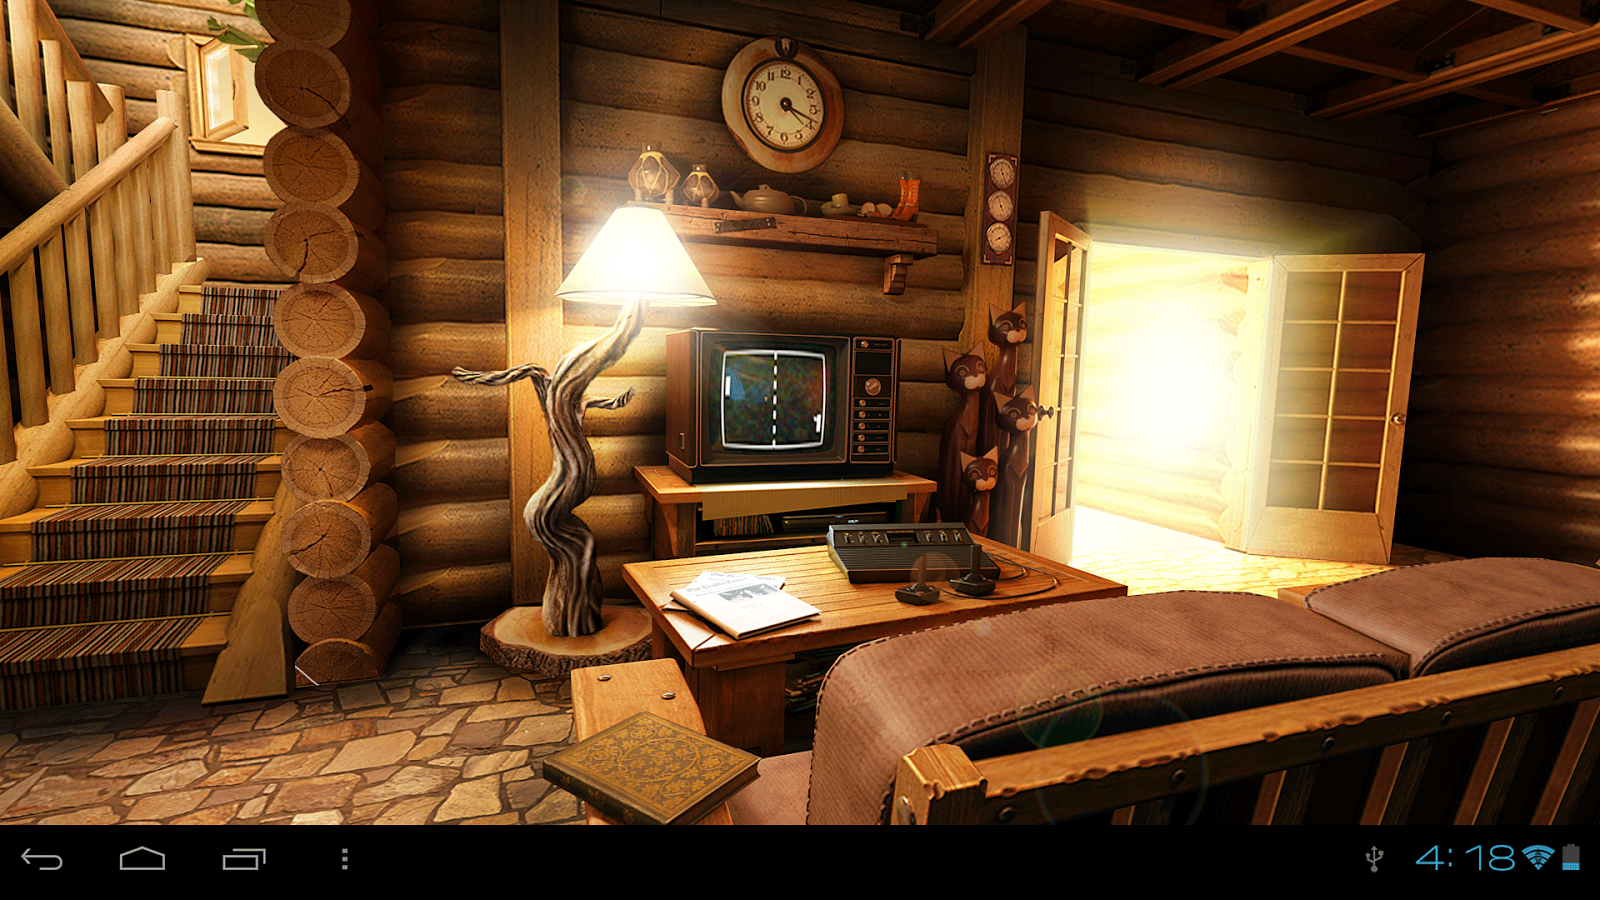 My log home 3d live wallpaper android apps on google play for 3d wallpaper of house